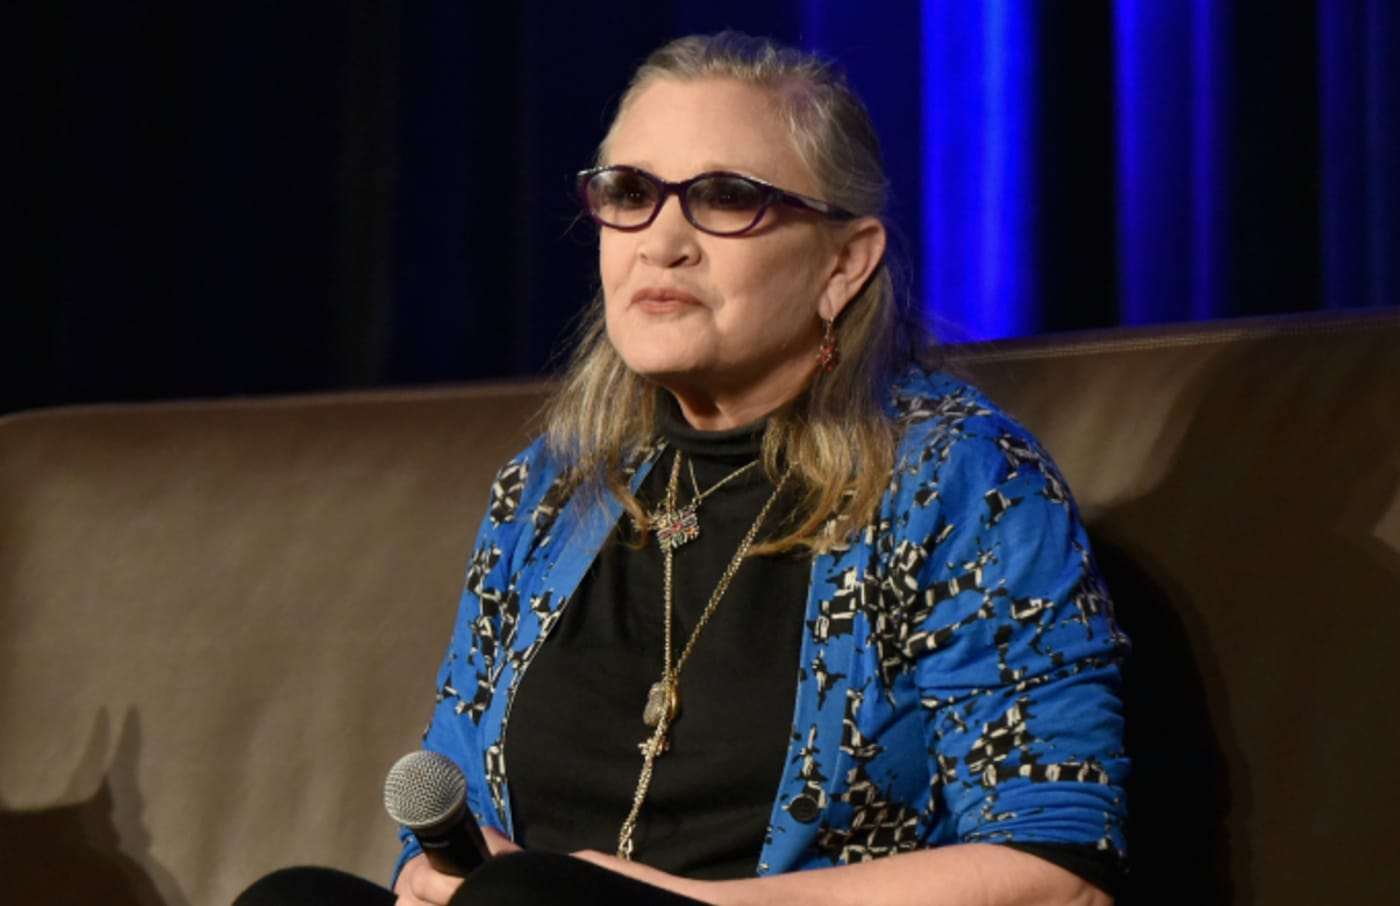 Actress Carrie Fisher speaks onstage during Wizard World Comic Con